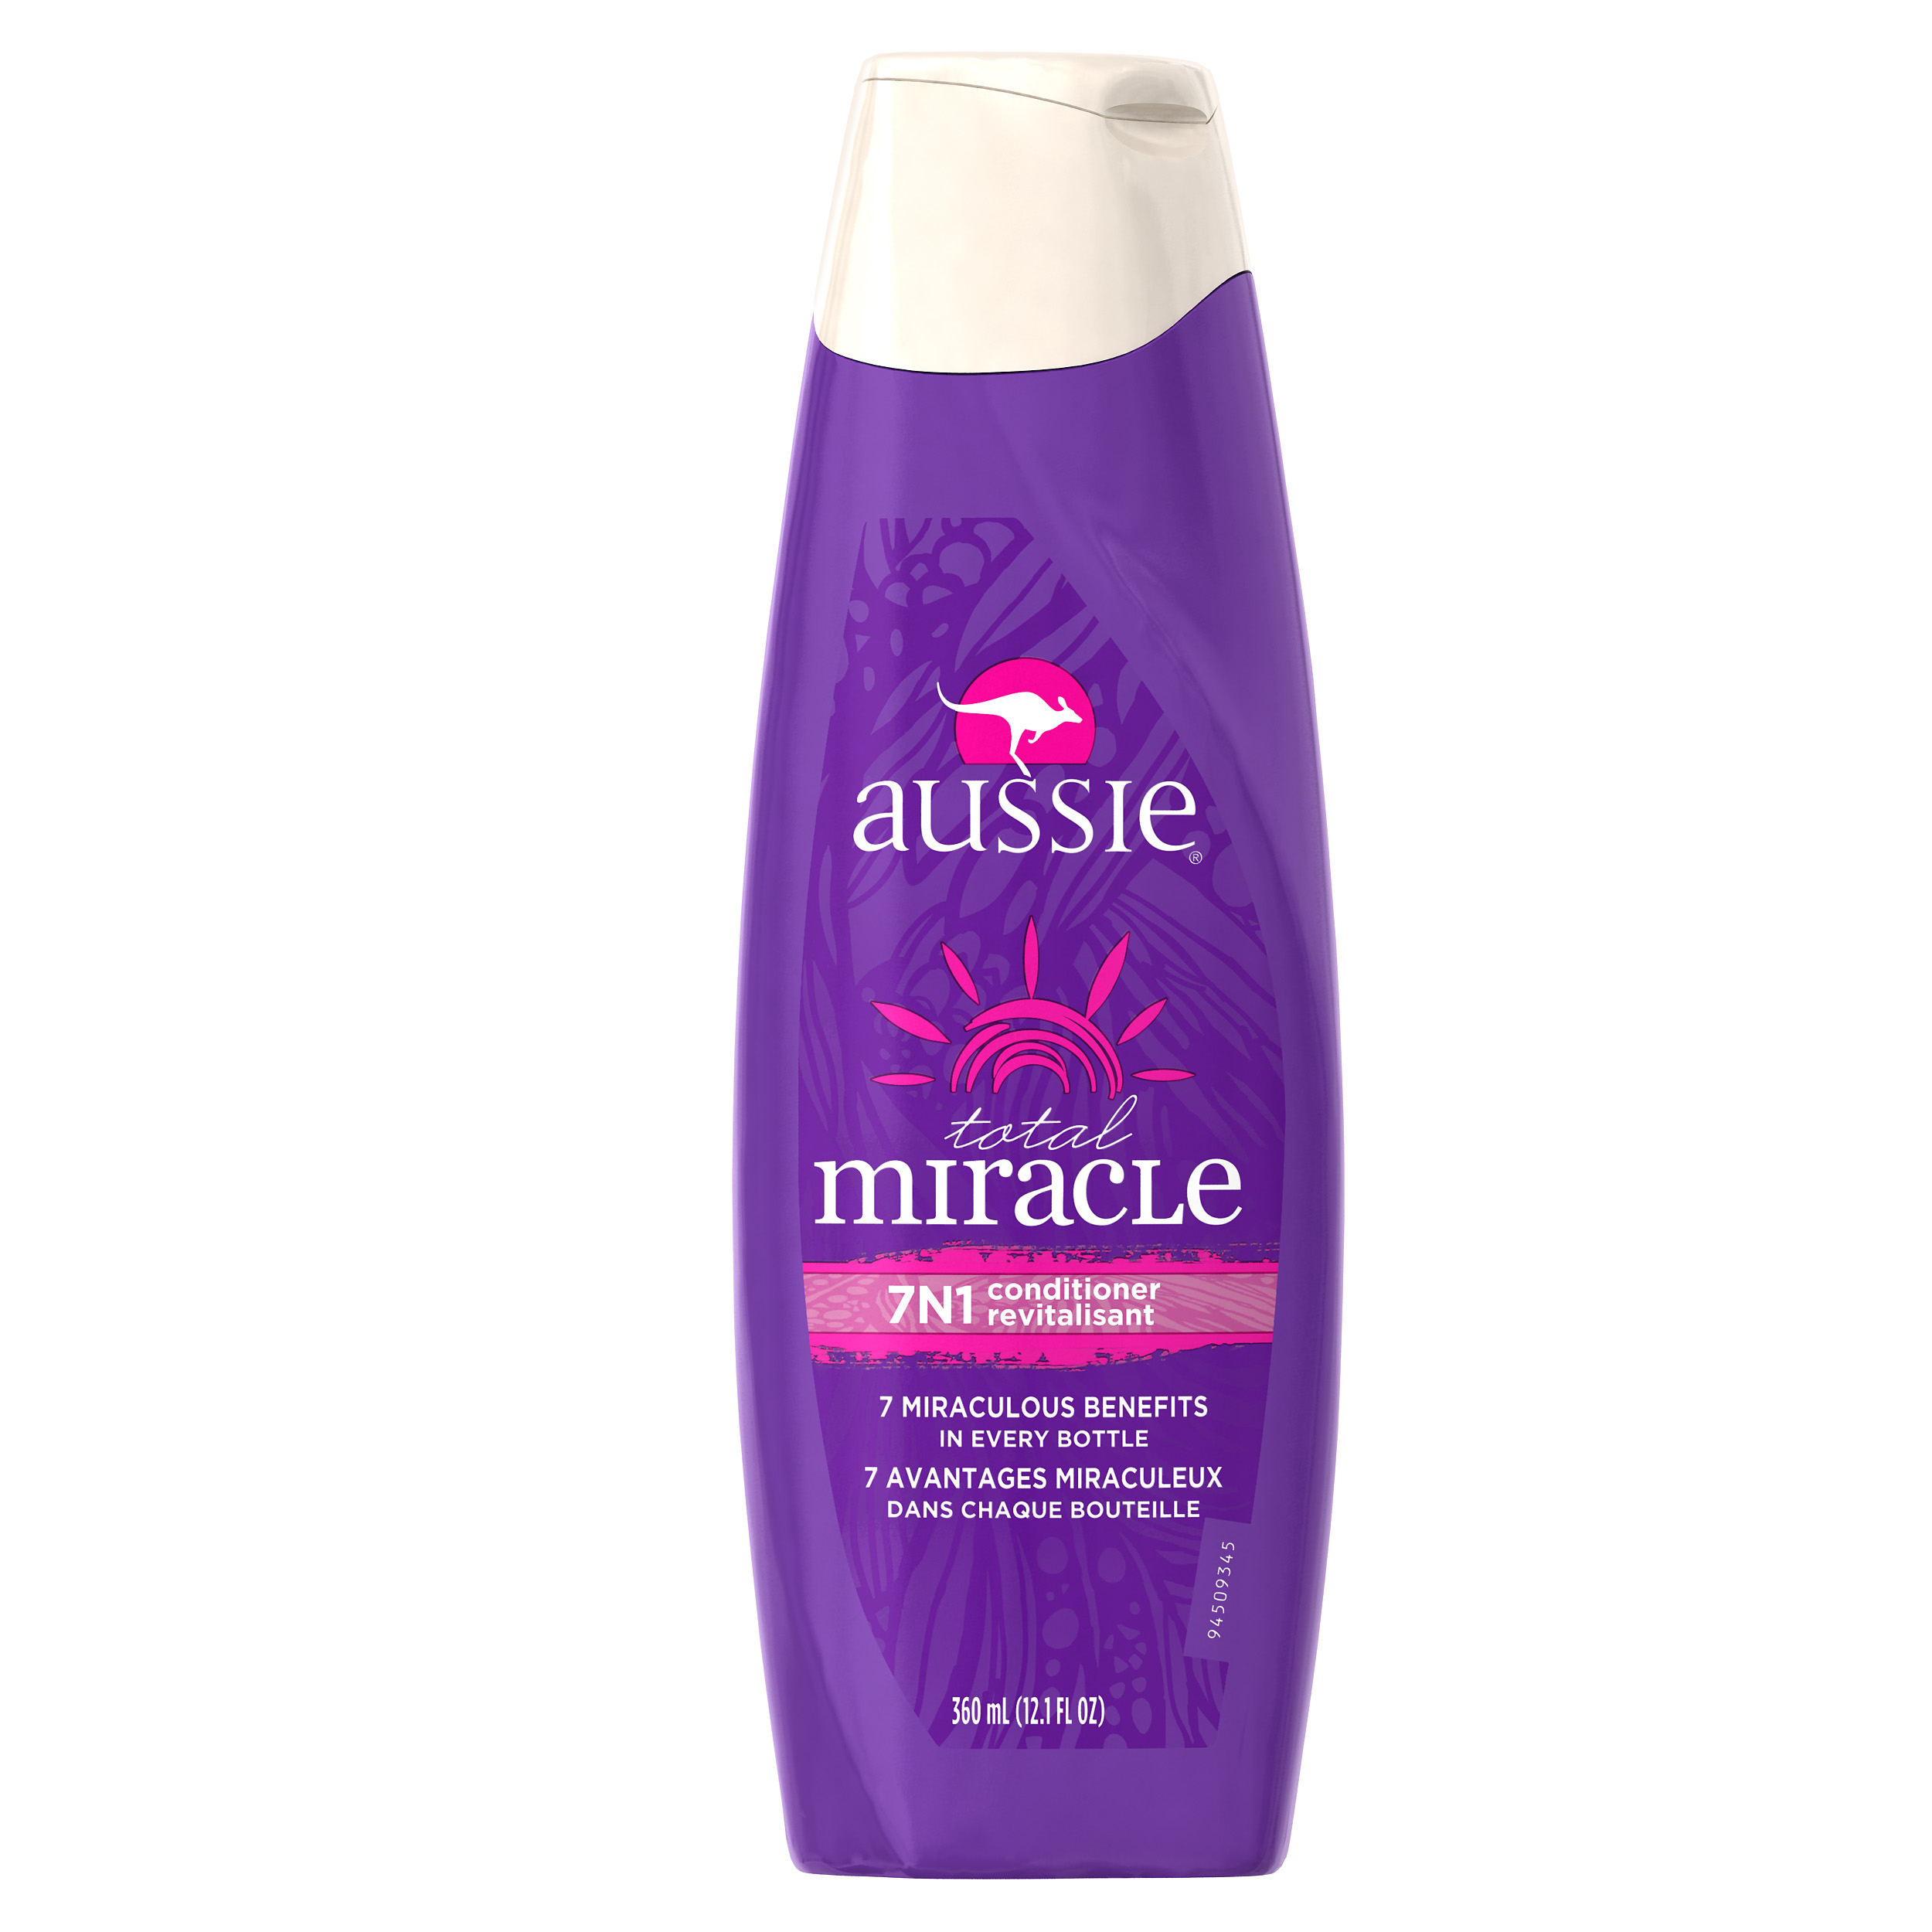 Aussie Total Miracle Collection 7N1 Conditioner, 12.1 fl oz